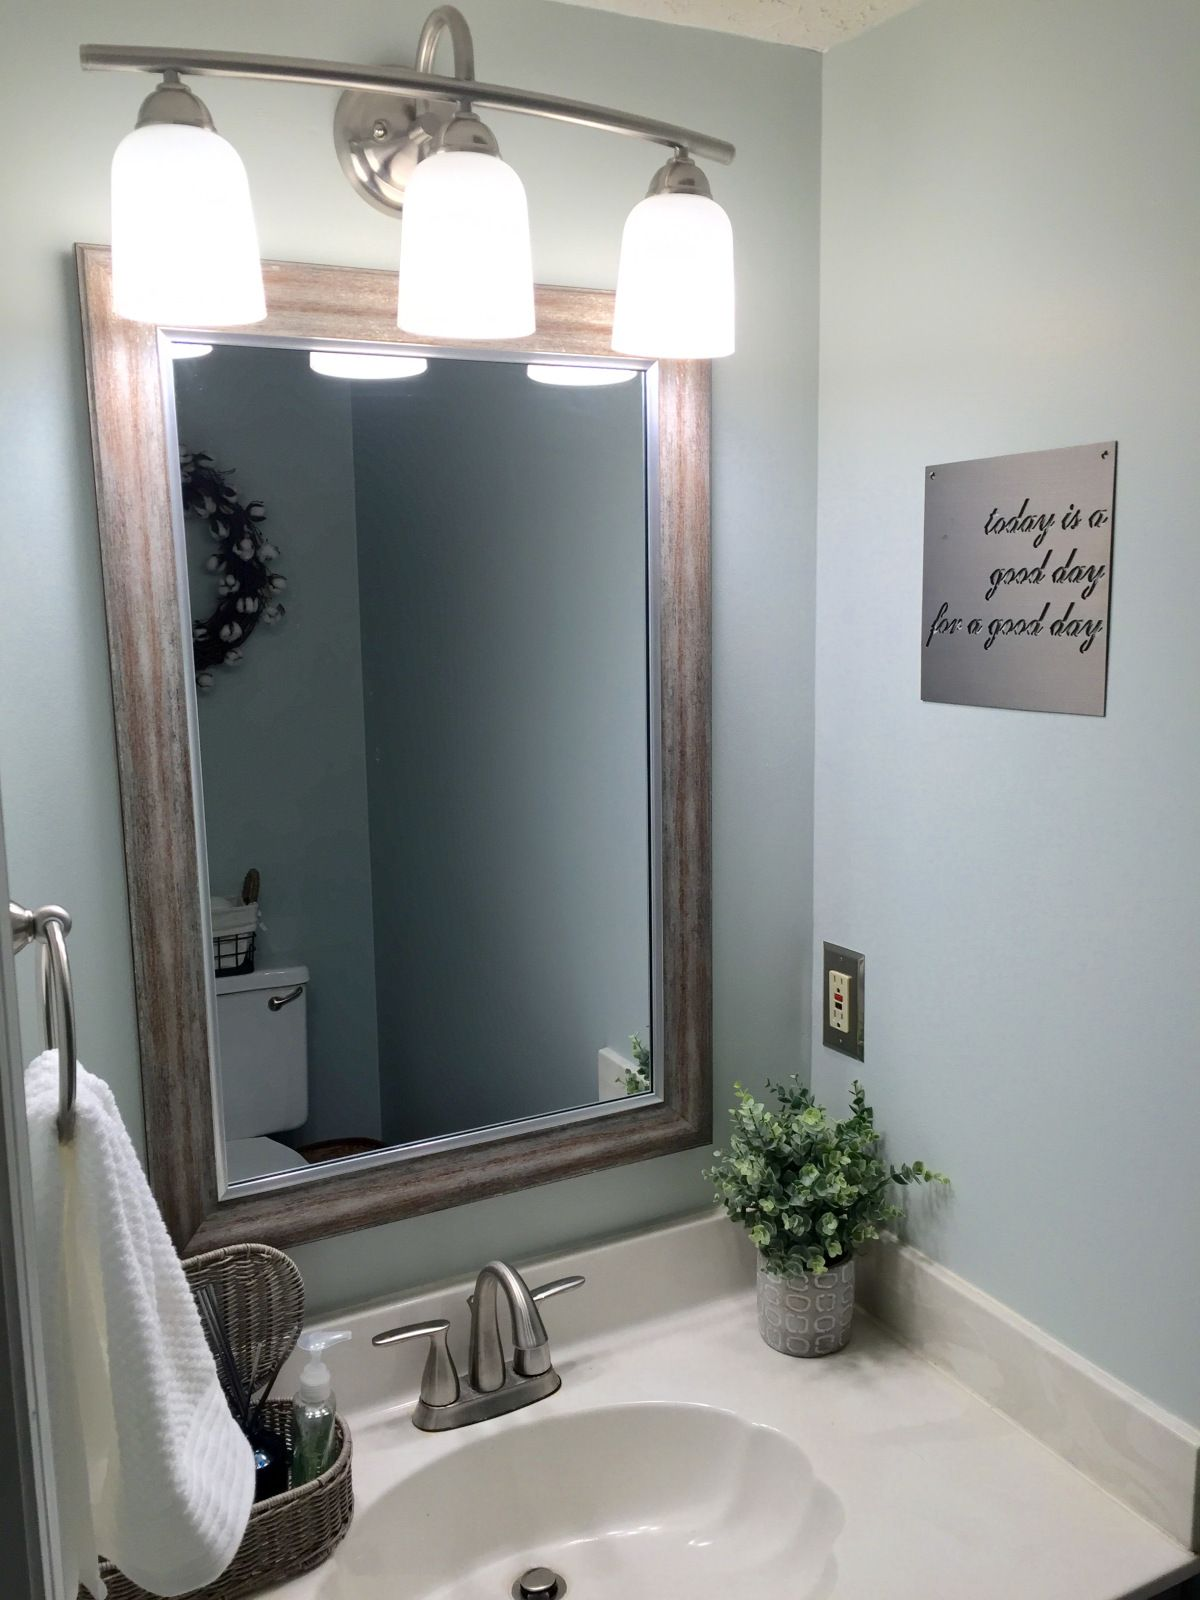 Farmhouse small half bath renovation. Fixer Upper bathroom in ... on gray chicken, gray pumpkin, gray apples, pj salt,